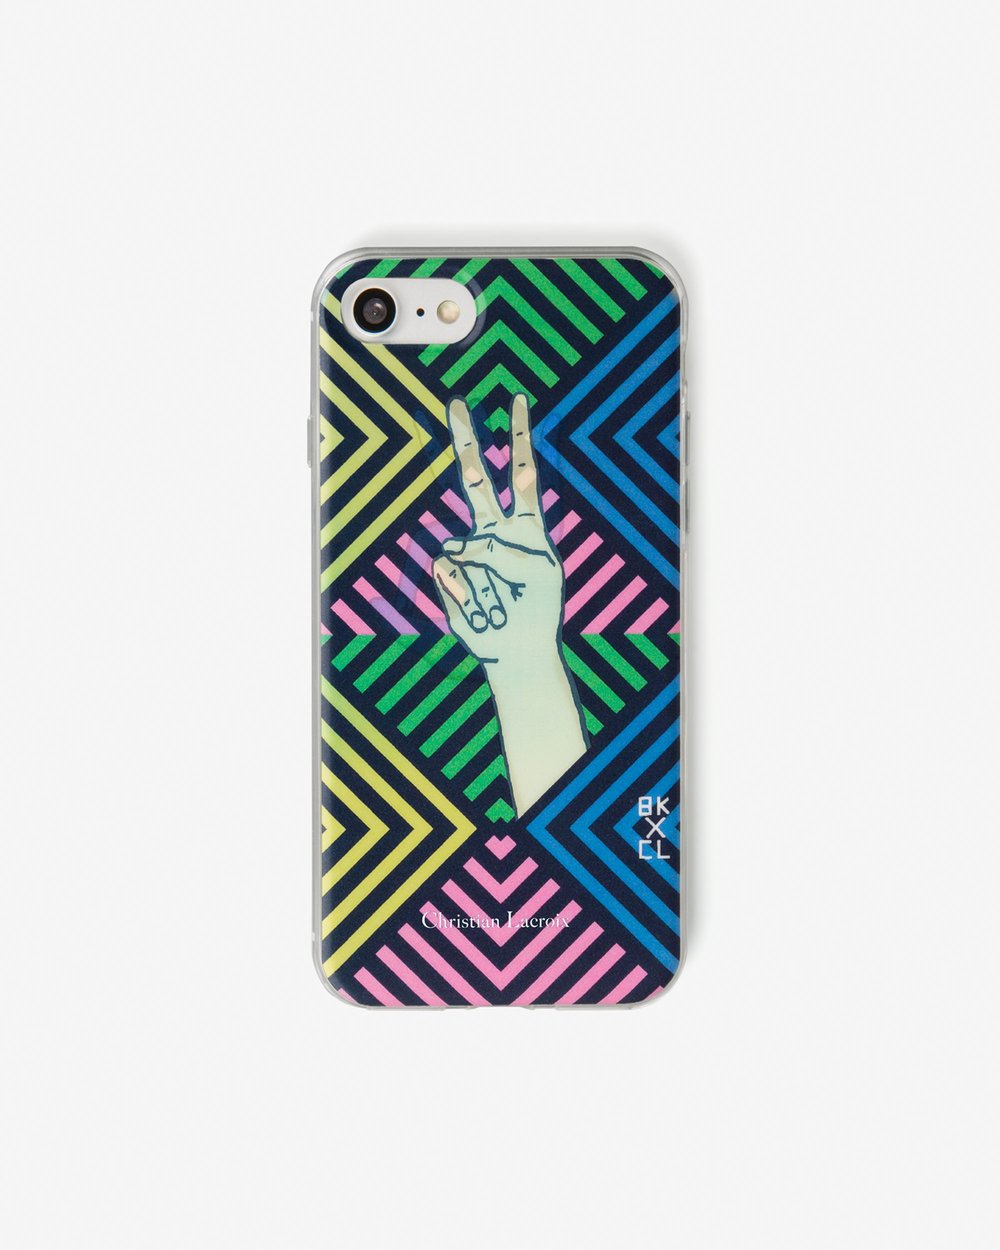 Lacroix_30_ans_CL_x_BK_Iphone_case_Helping_hand_2_5a049242c04ee.jpg